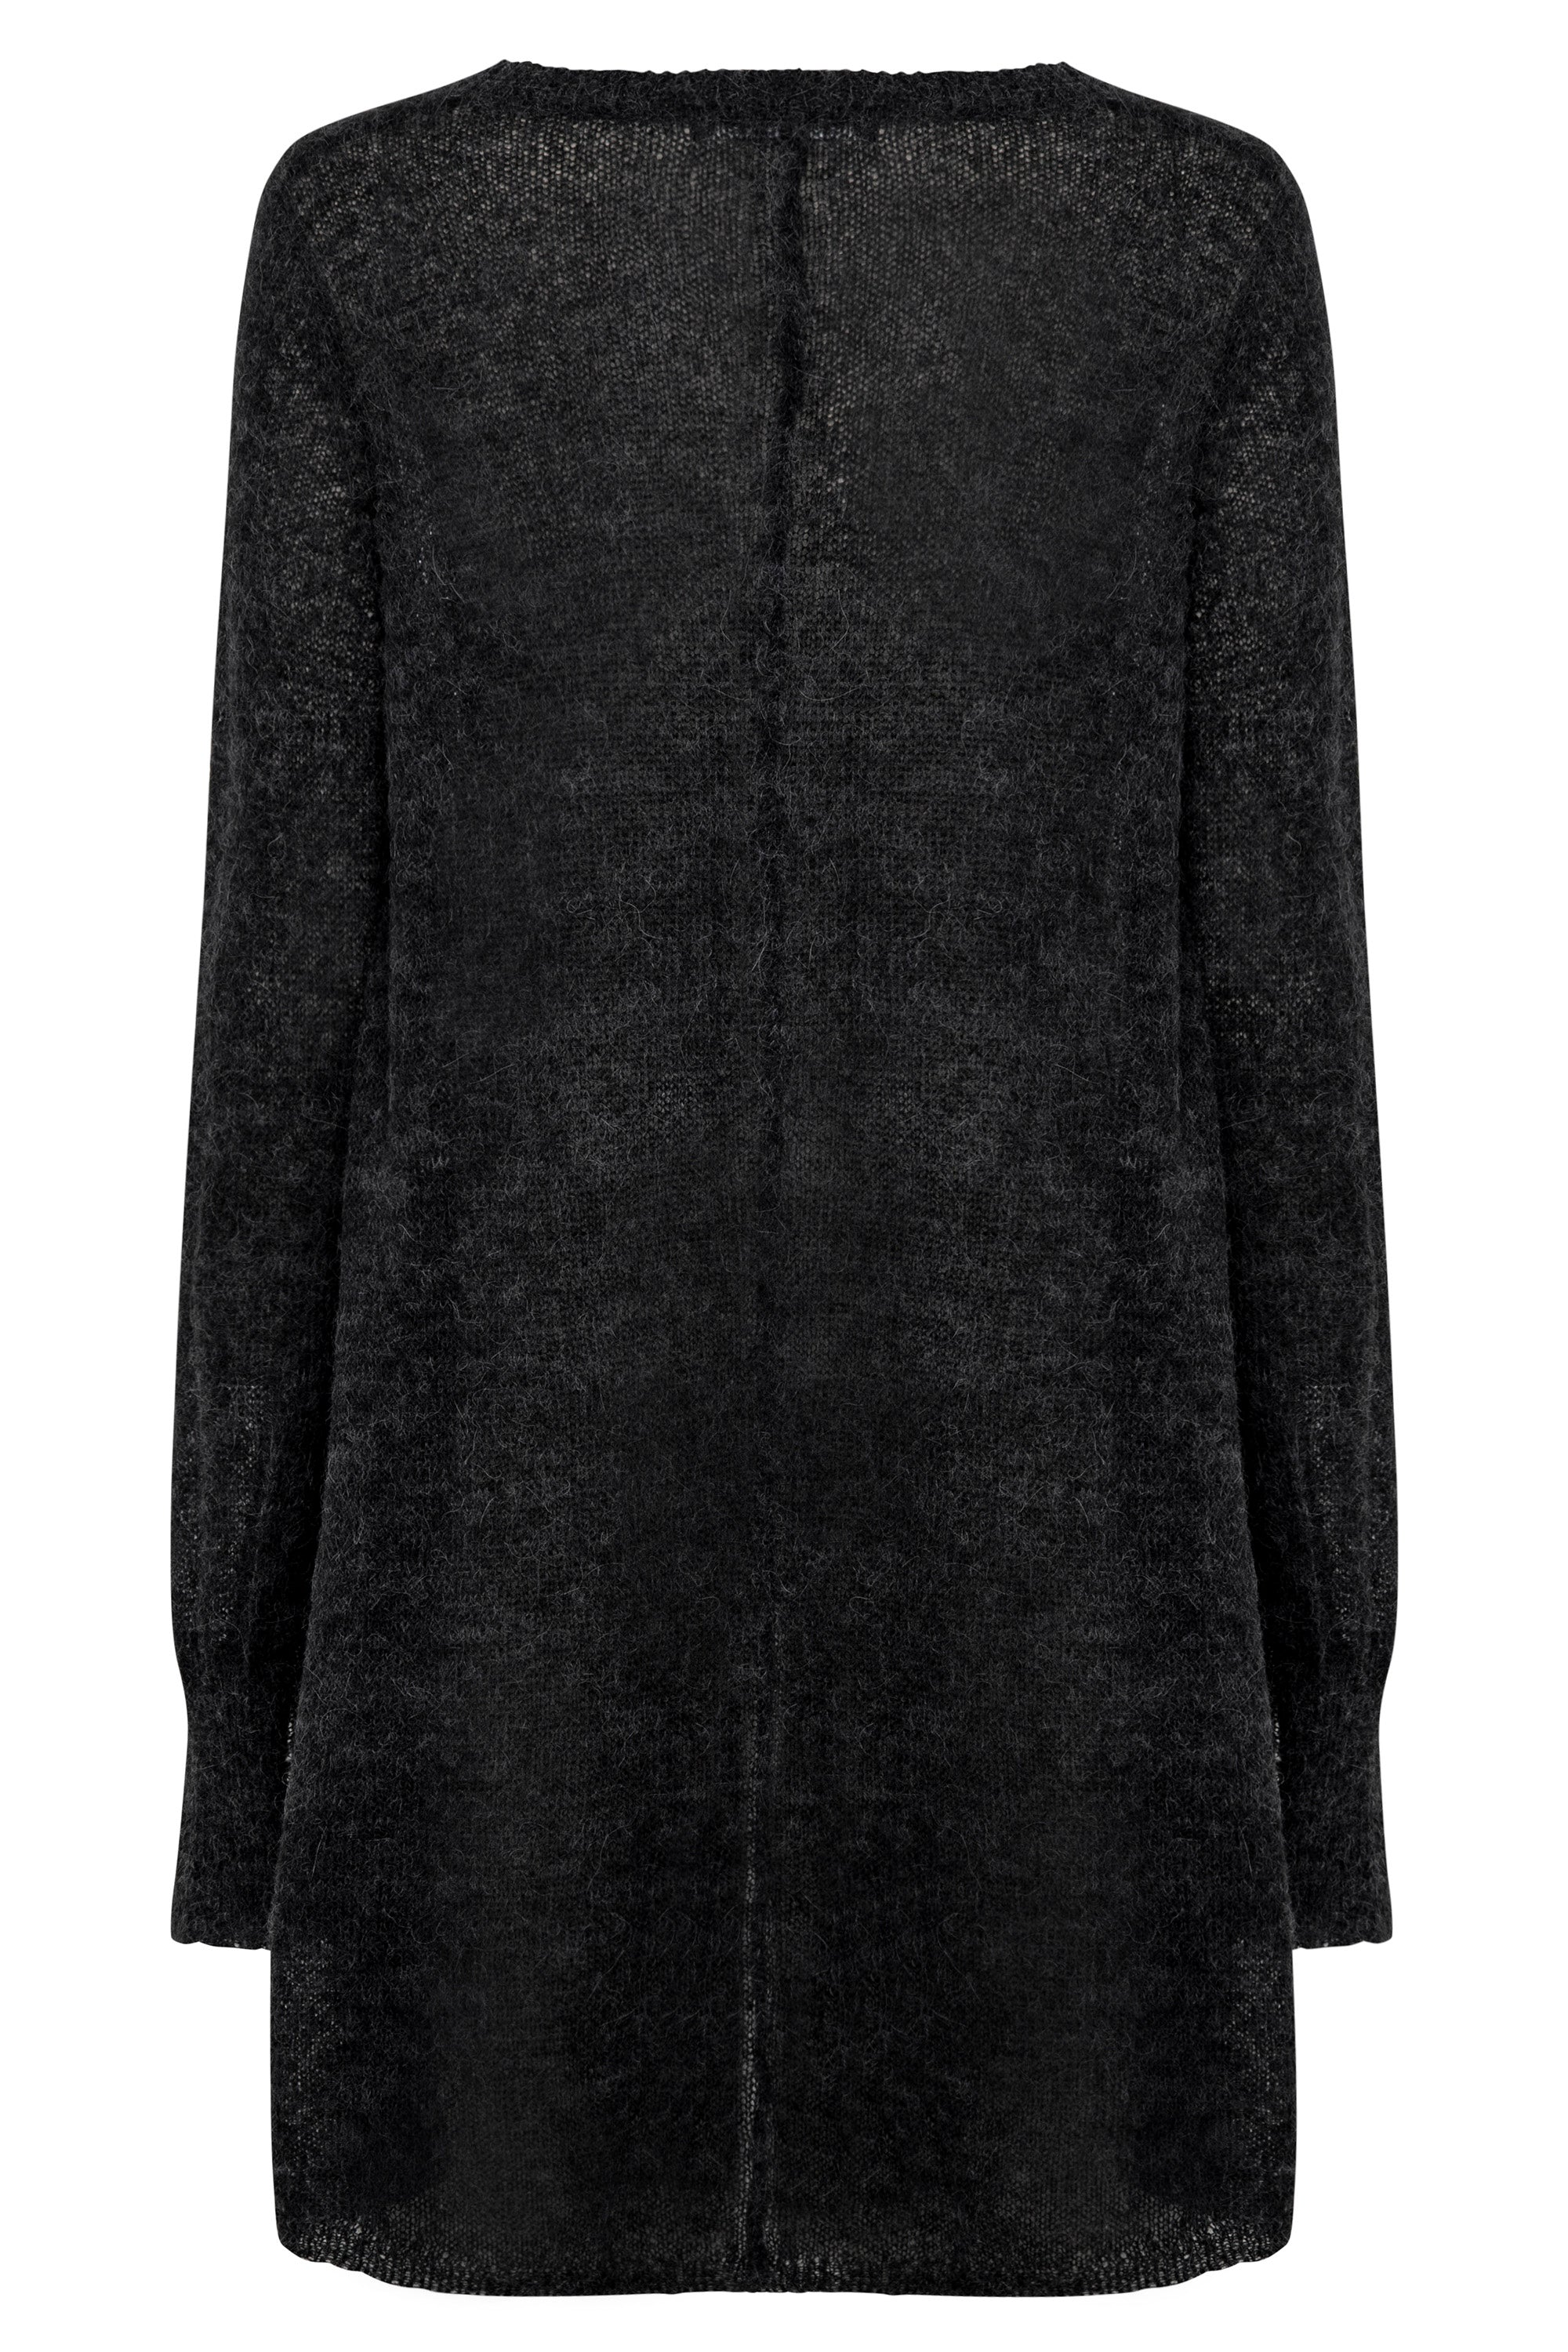 Theodora Jumper In Charcoal